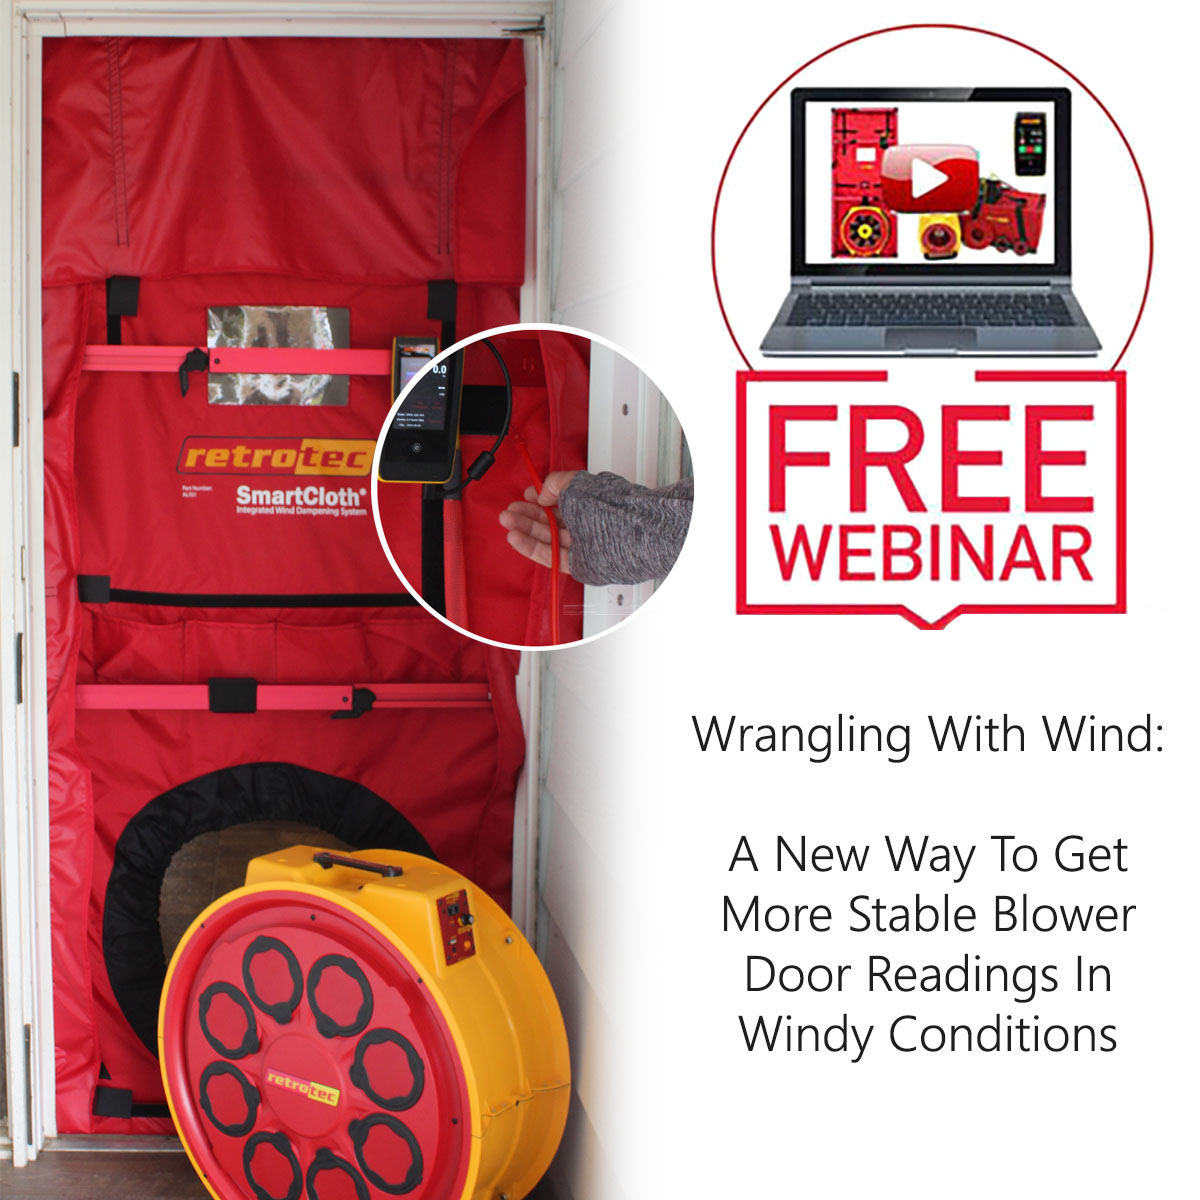 Wrangling With Wind: An Education On The Effect of Wind During Blower Door Testing